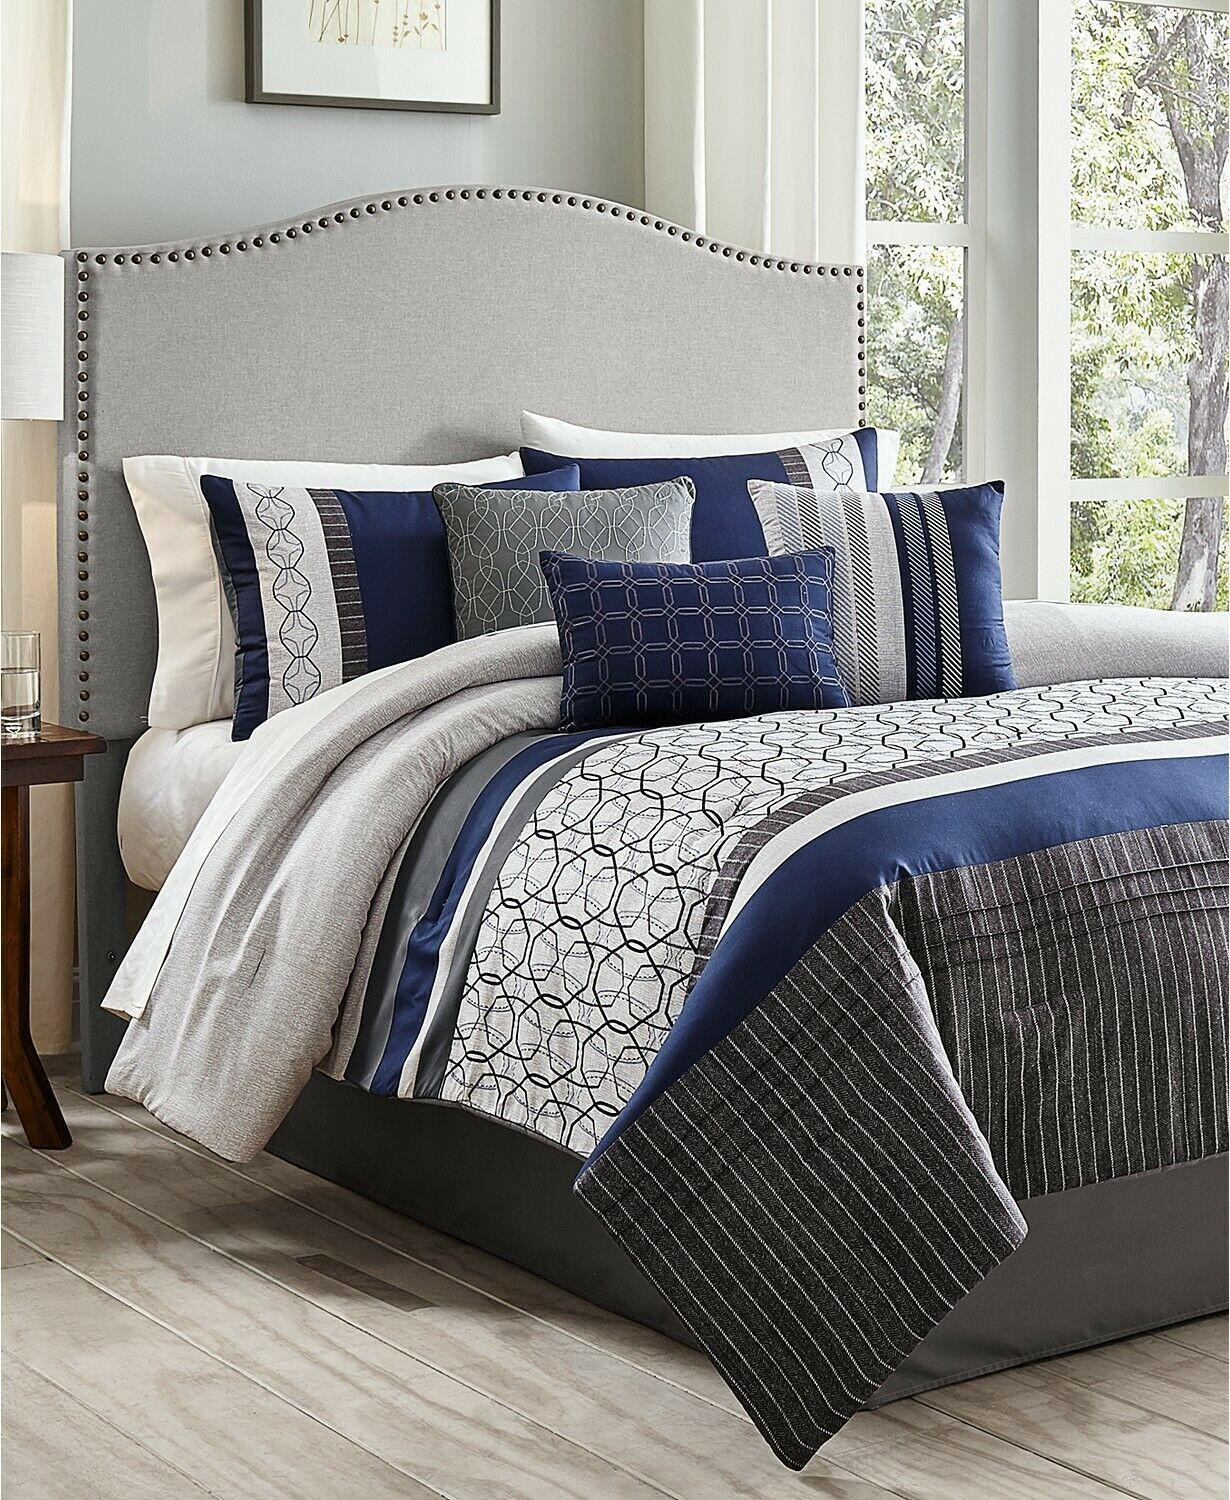 Hallmart Collectibles 7 Piece Queen Comforter Set Wrener E92213